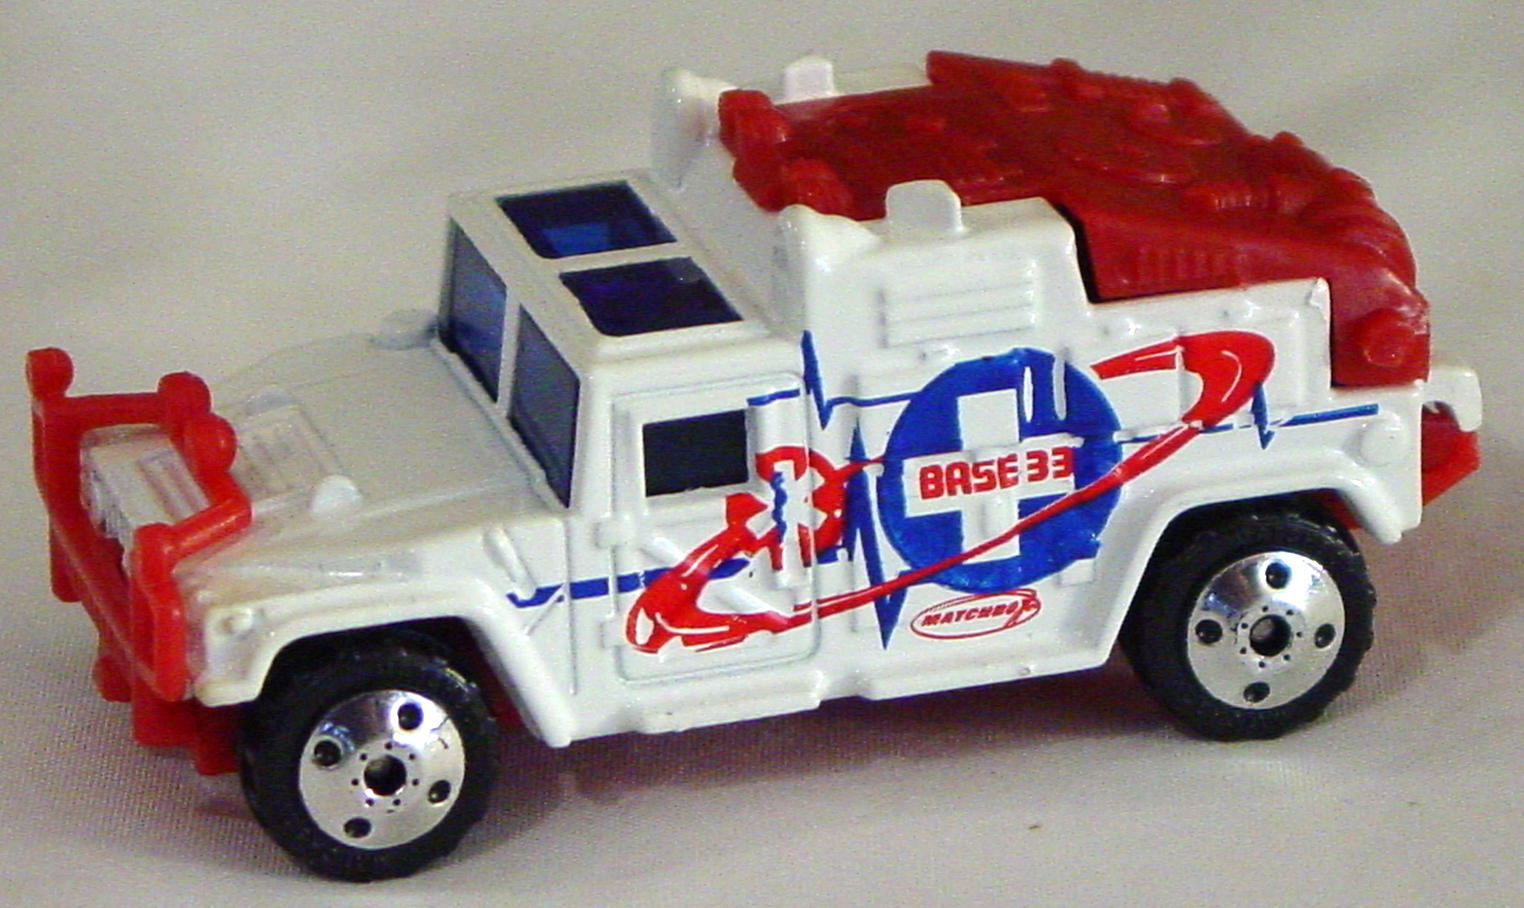 Offshore SuperFast 48 L 3 - Hummer Police White darker red Base 33 made in China 2012EA